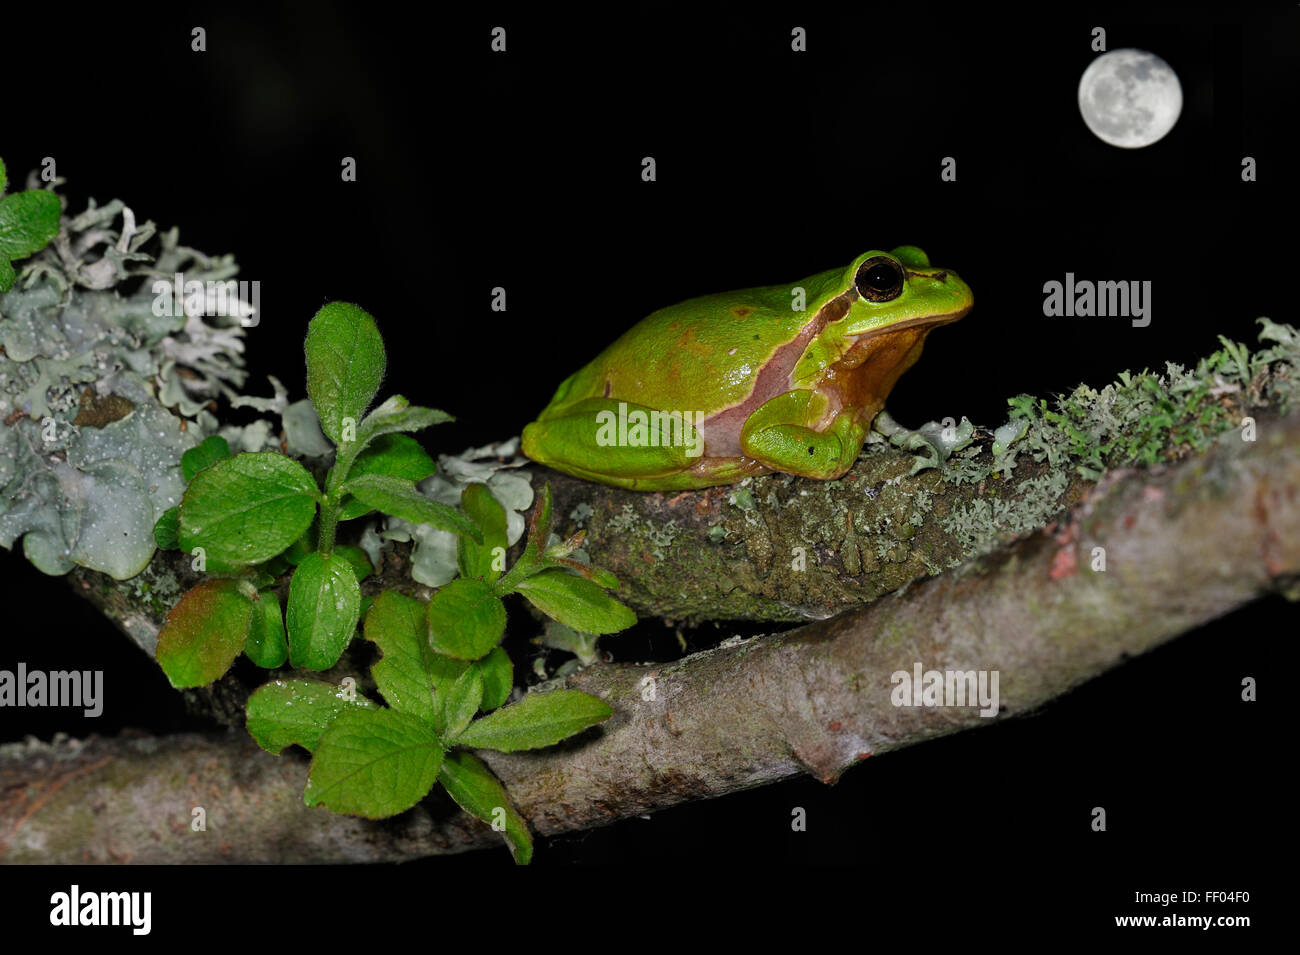 European / Common tree frog (Hyla arborea) sitting on branch covered in lichen at night with full moon Stock Photo